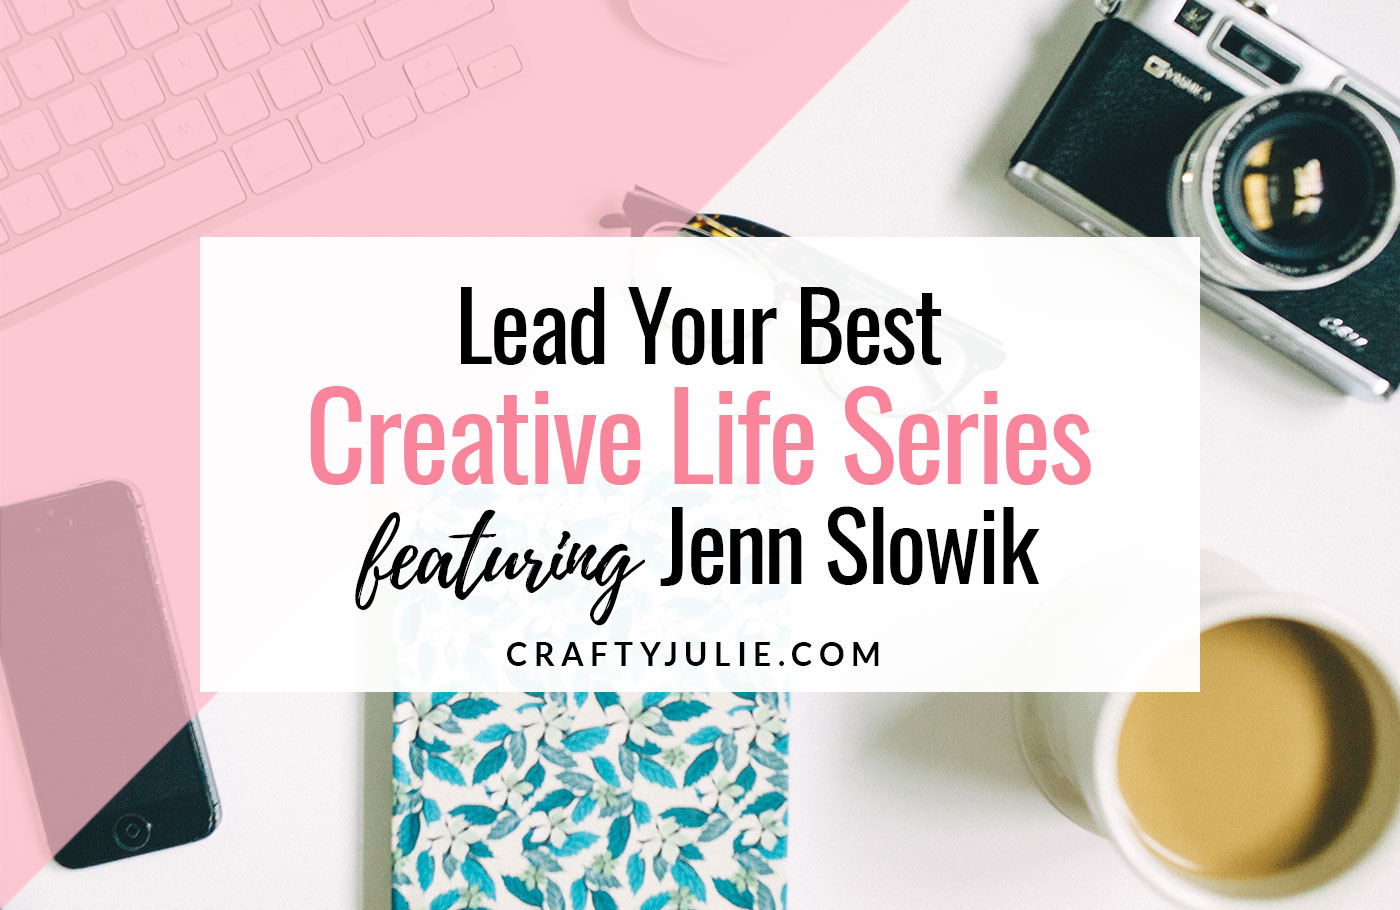 Crafty Julie | Lead Your Best Creative Life | featuring Jenn Slowik